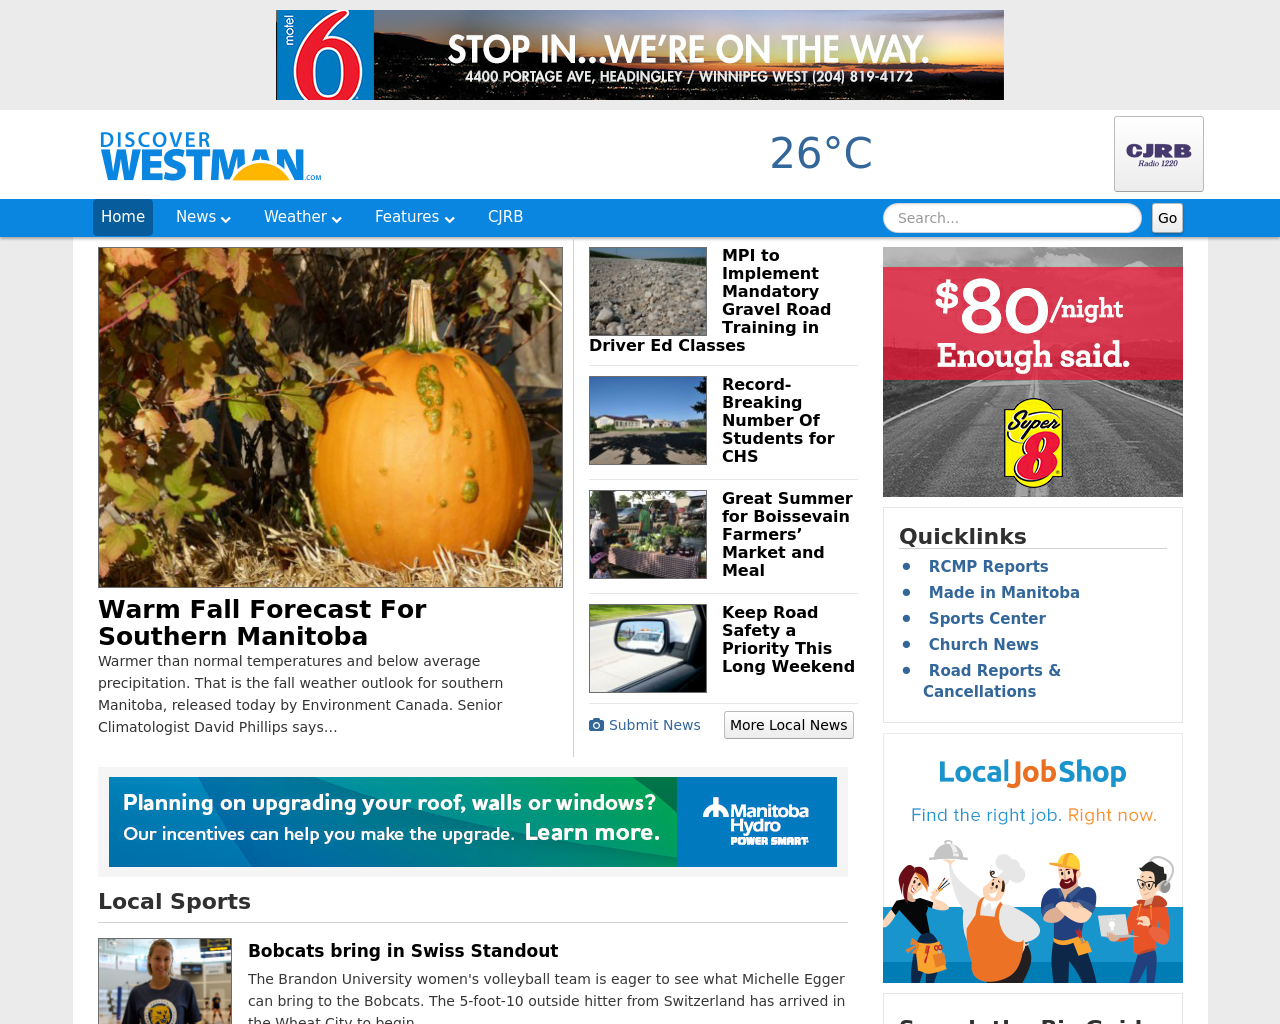 Discover-Westman-Advertising-Reviews-Pricing